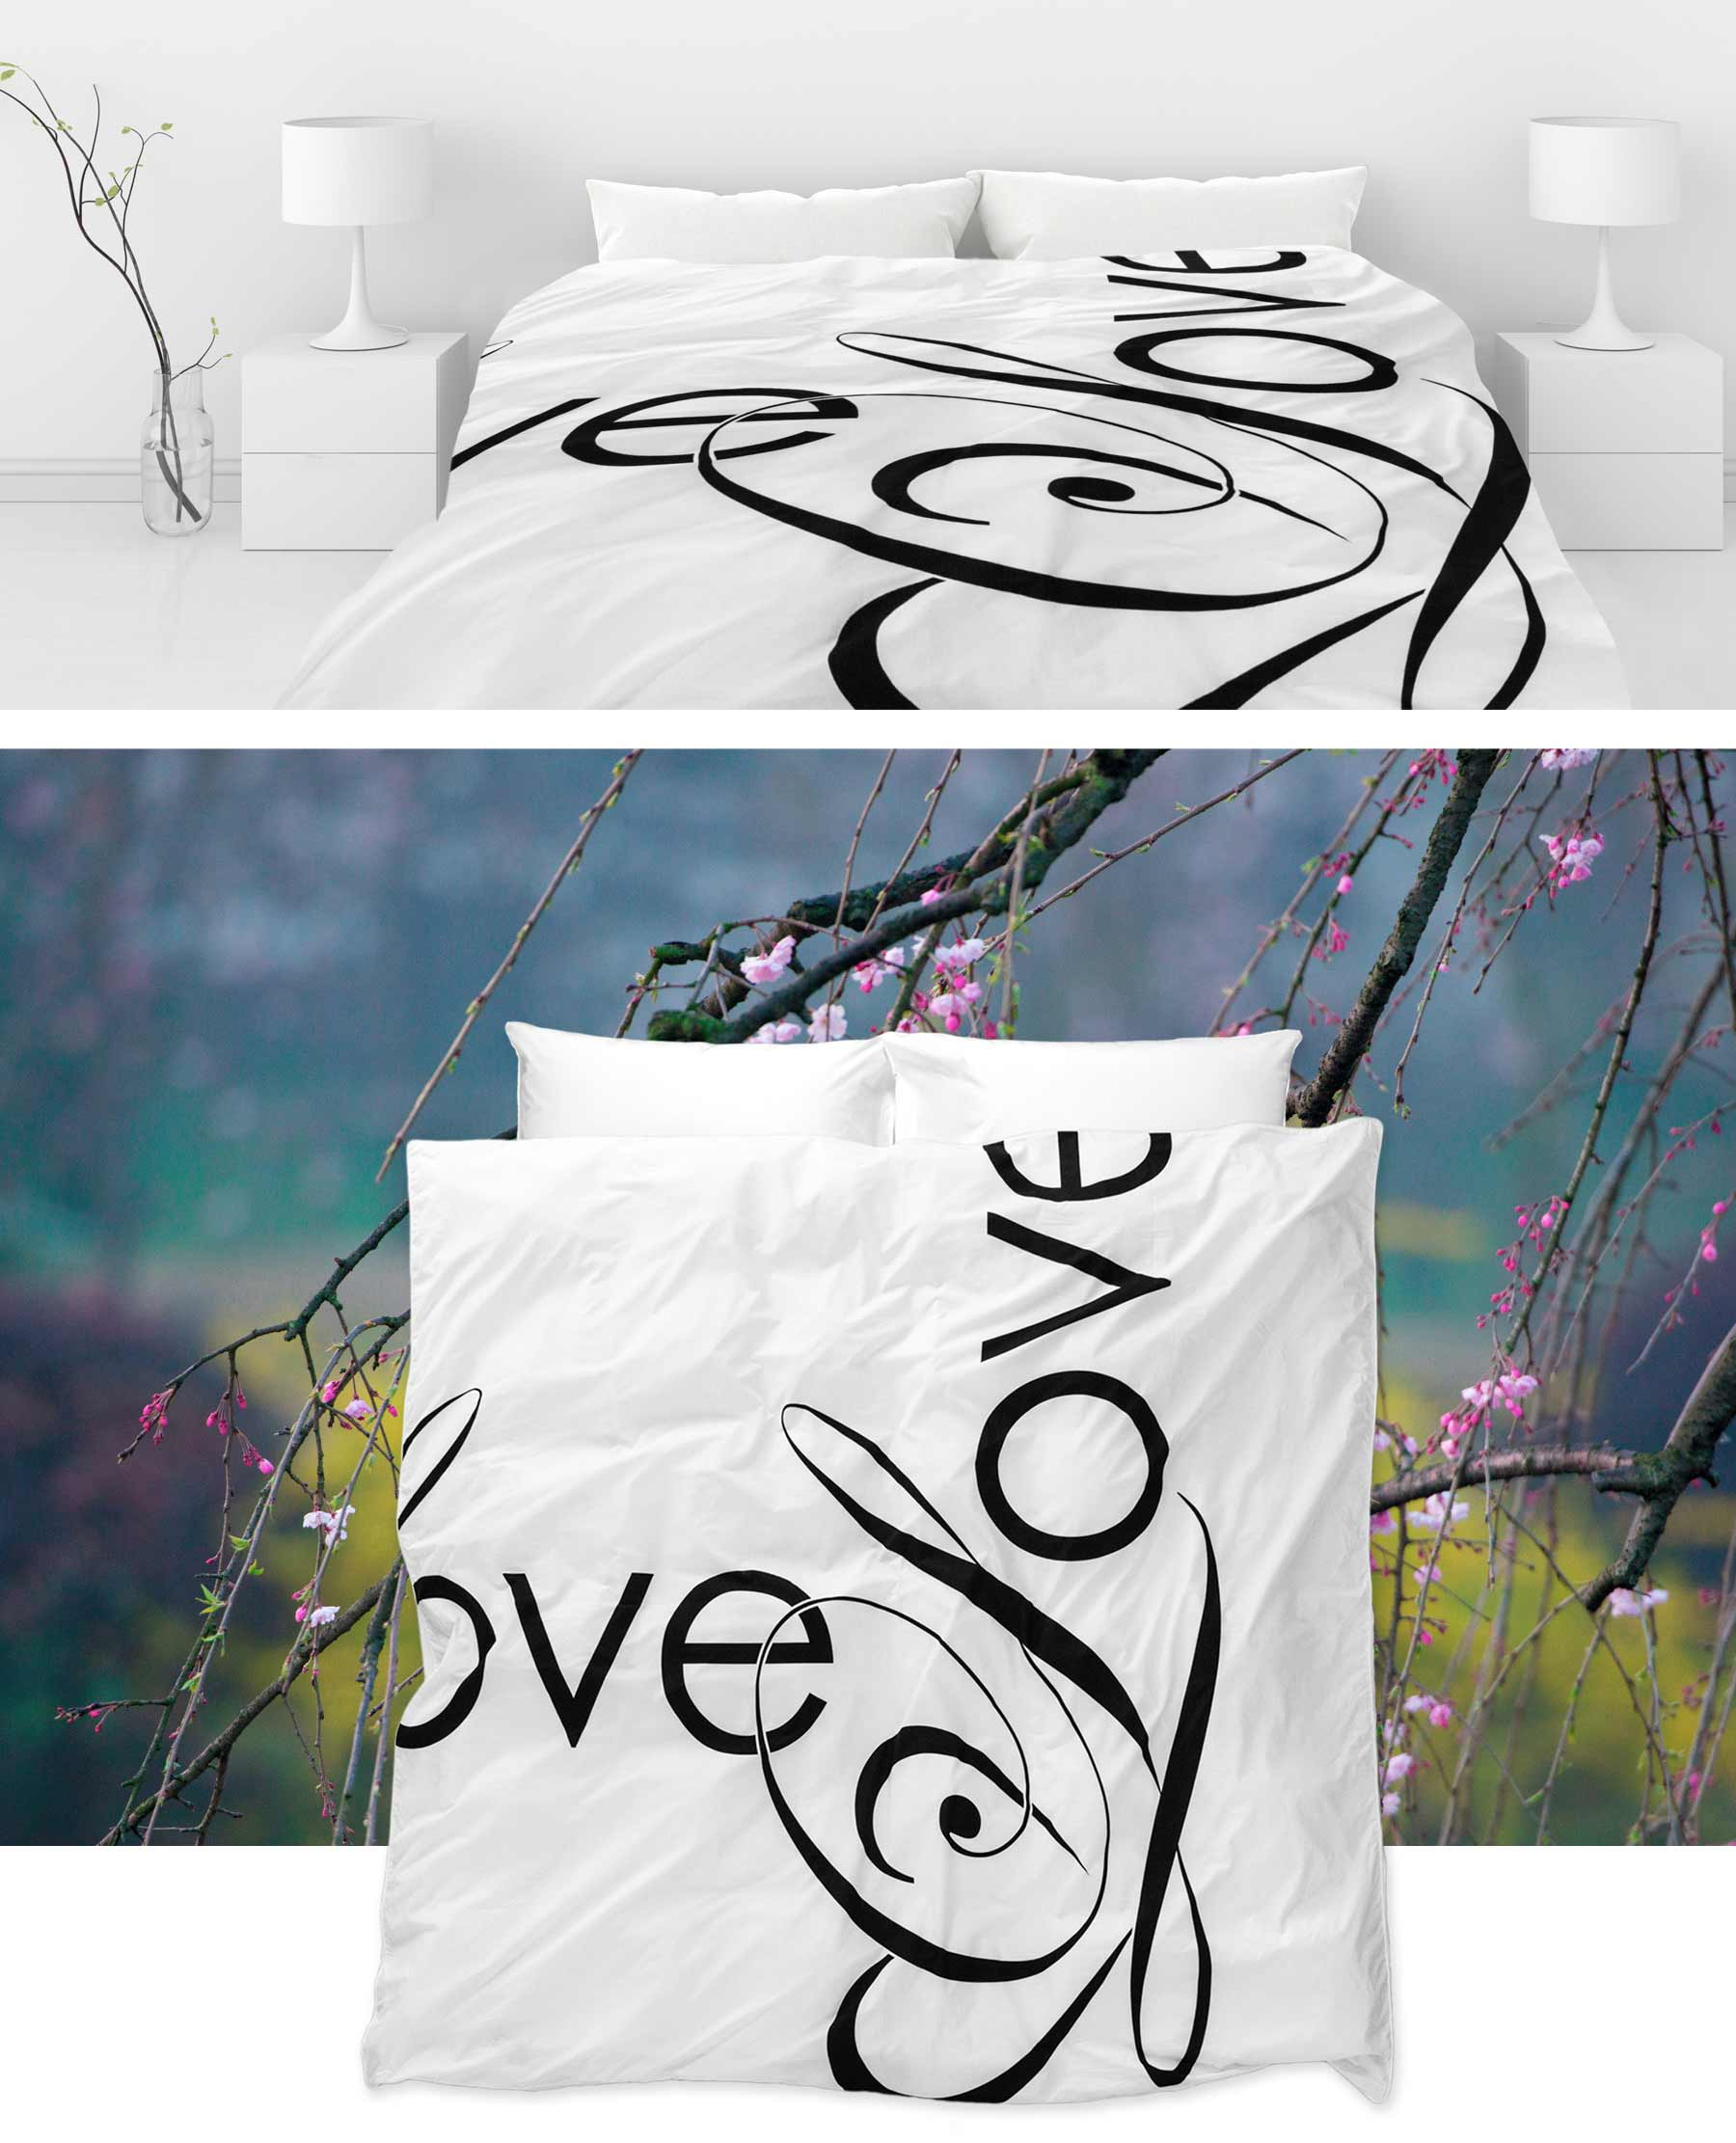 ZayZay-Love-Song-duvet-cover-on-bed-in-white-room-and-shown-on-top-of-tree-branch-nature-backdrop